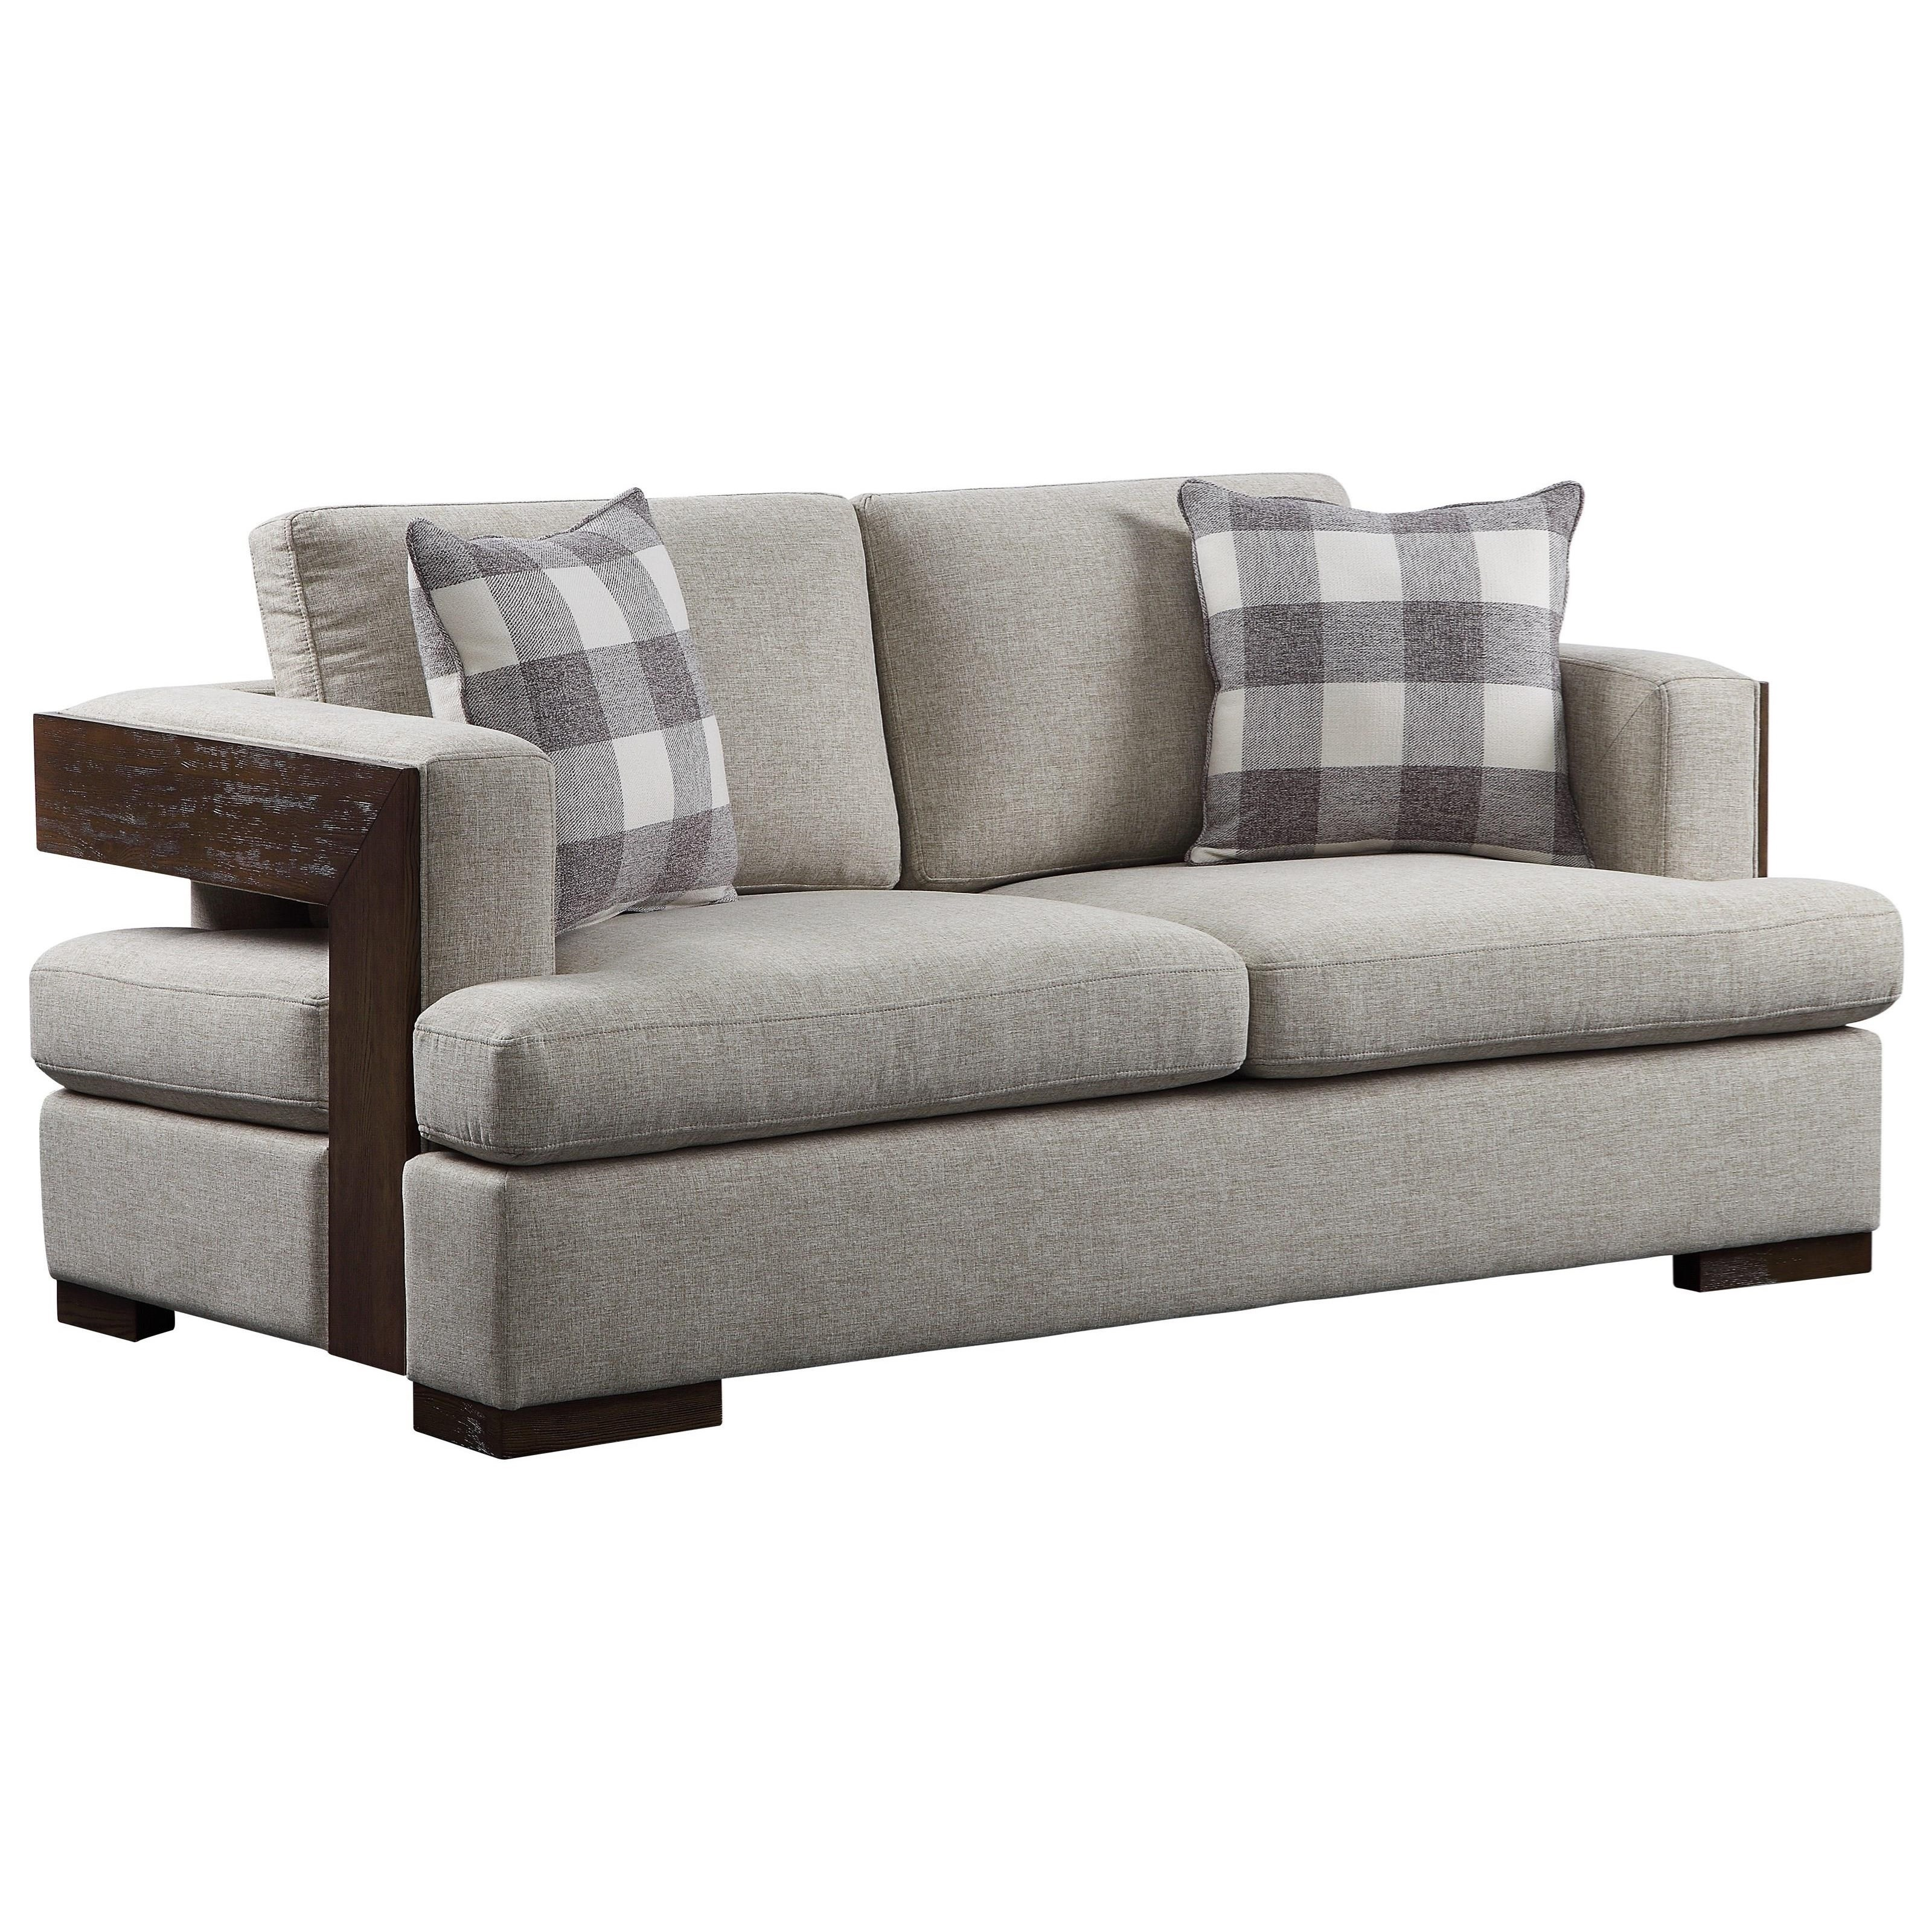 Niamey Loveseat w/2 Pillows by Acme Furniture at A1 Furniture & Mattress